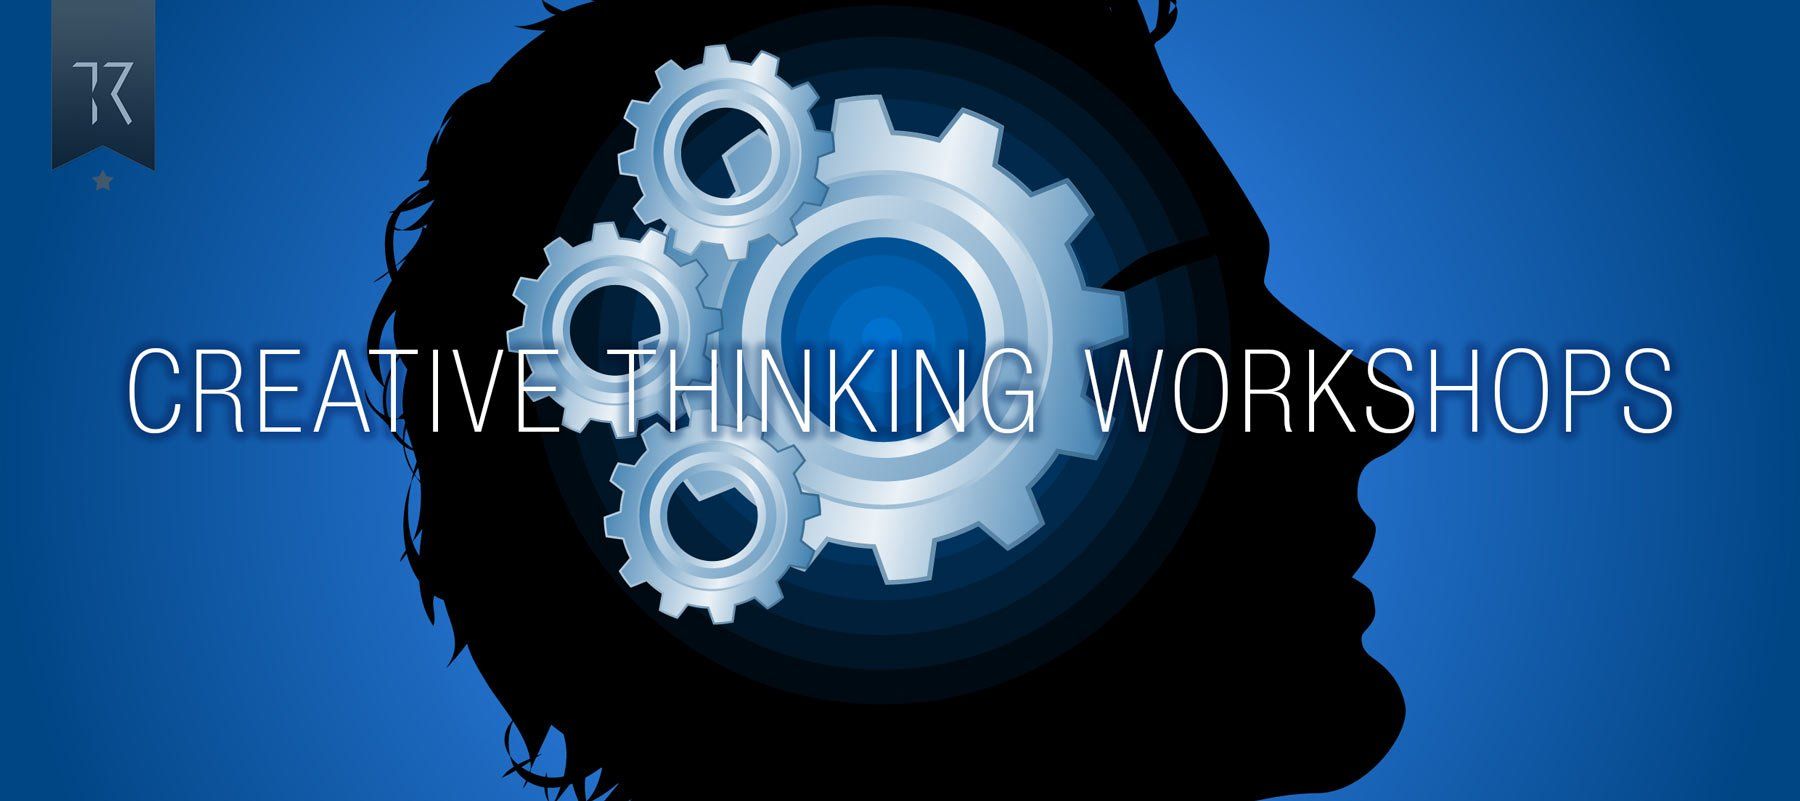 Creative Thinking Workshops